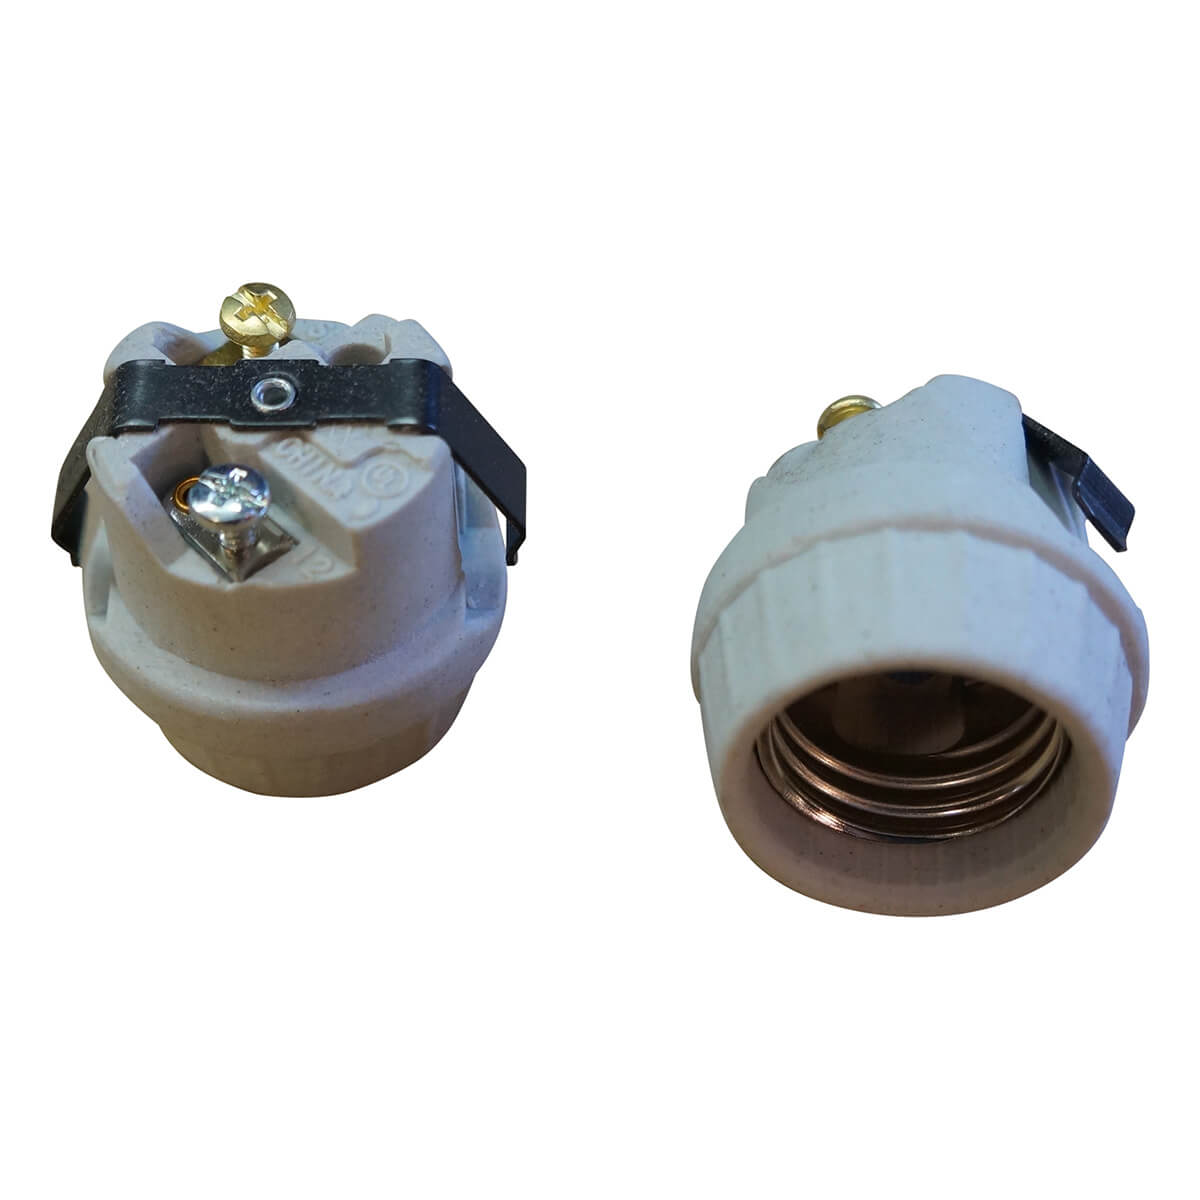 Replacement Socket for Canarm IRB Heat Lamps